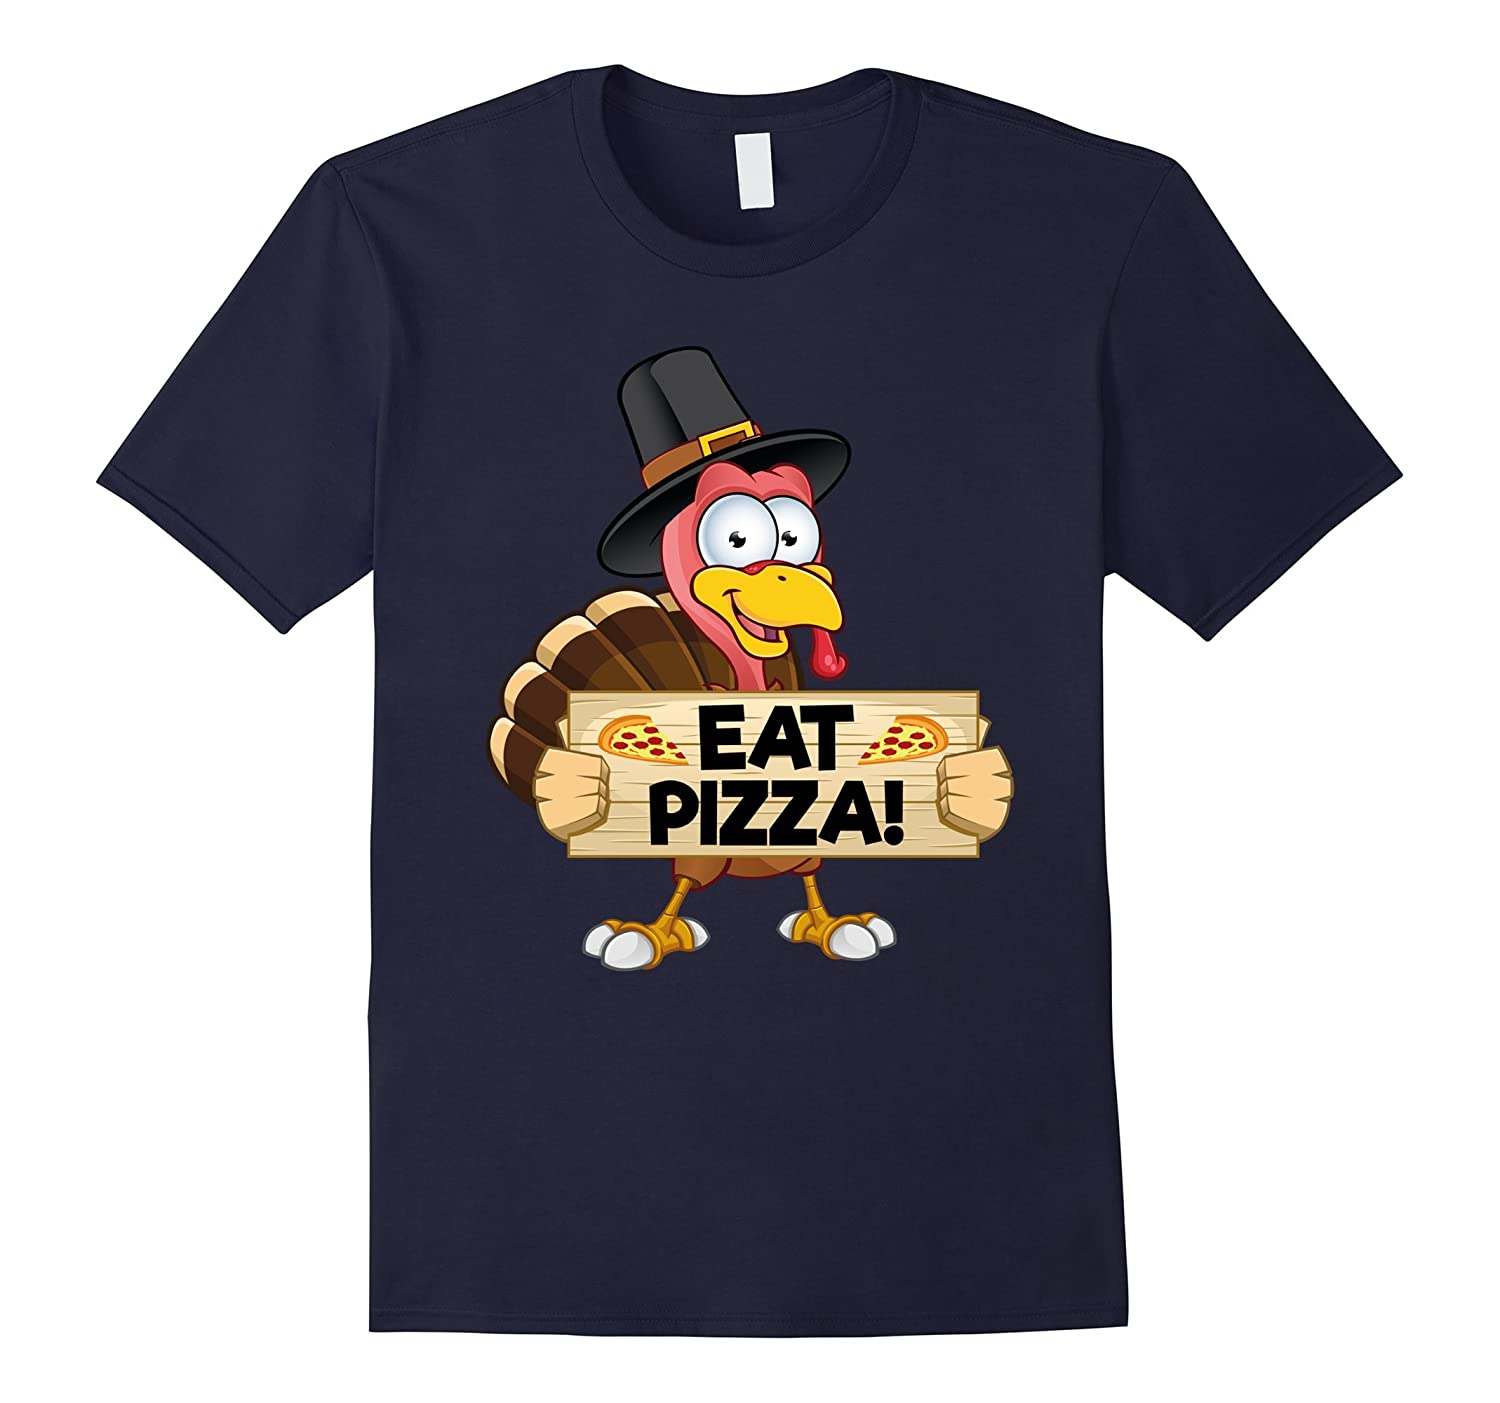 Turkey Eat Pizza Funny Thanksgiving Day T-Shirt Kids Adult-ANZ